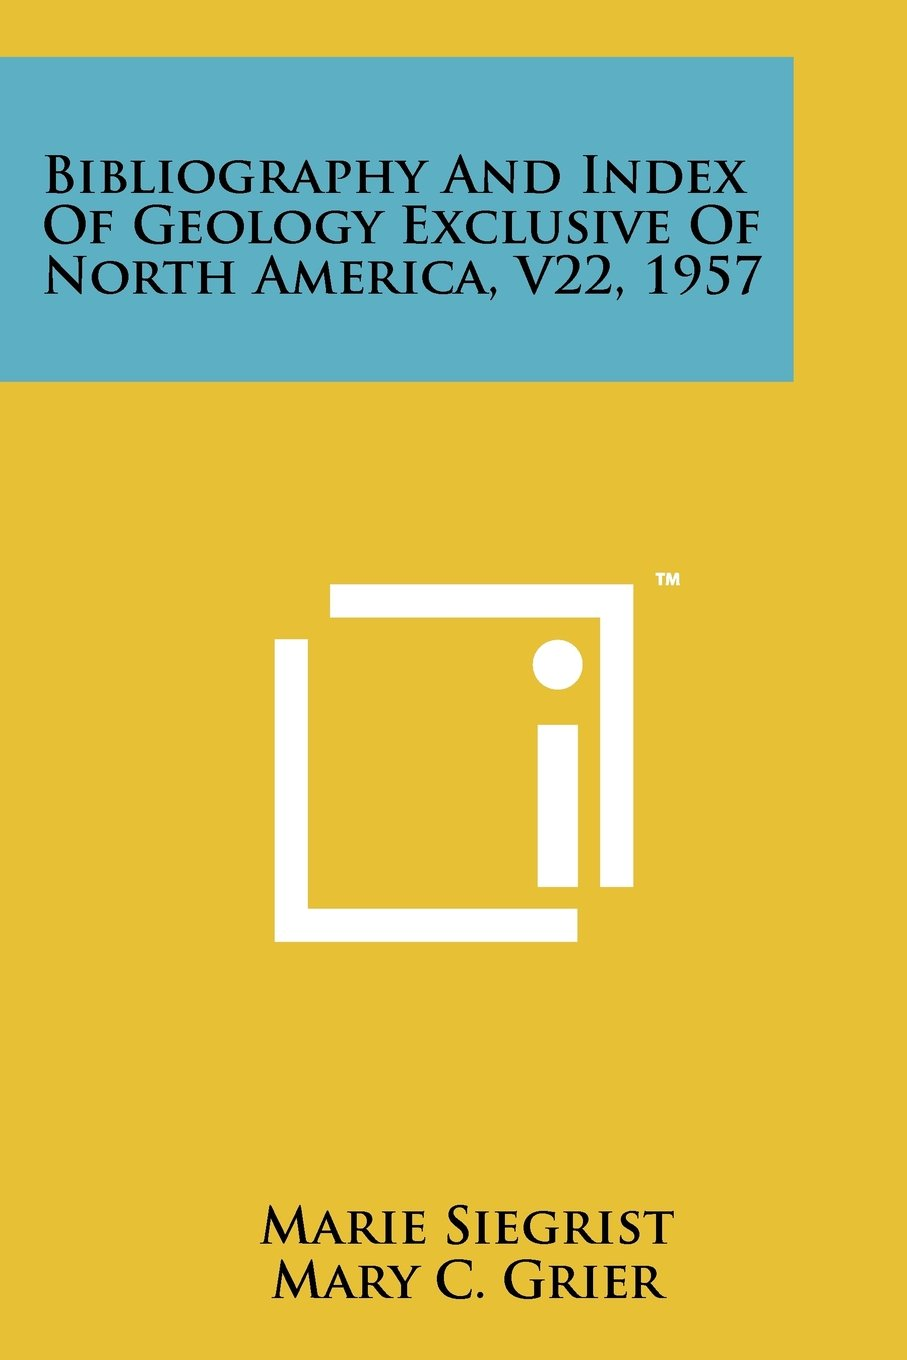 Download Bibliography and Index of Geology Exclusive of North America, V22, 1957 ebook